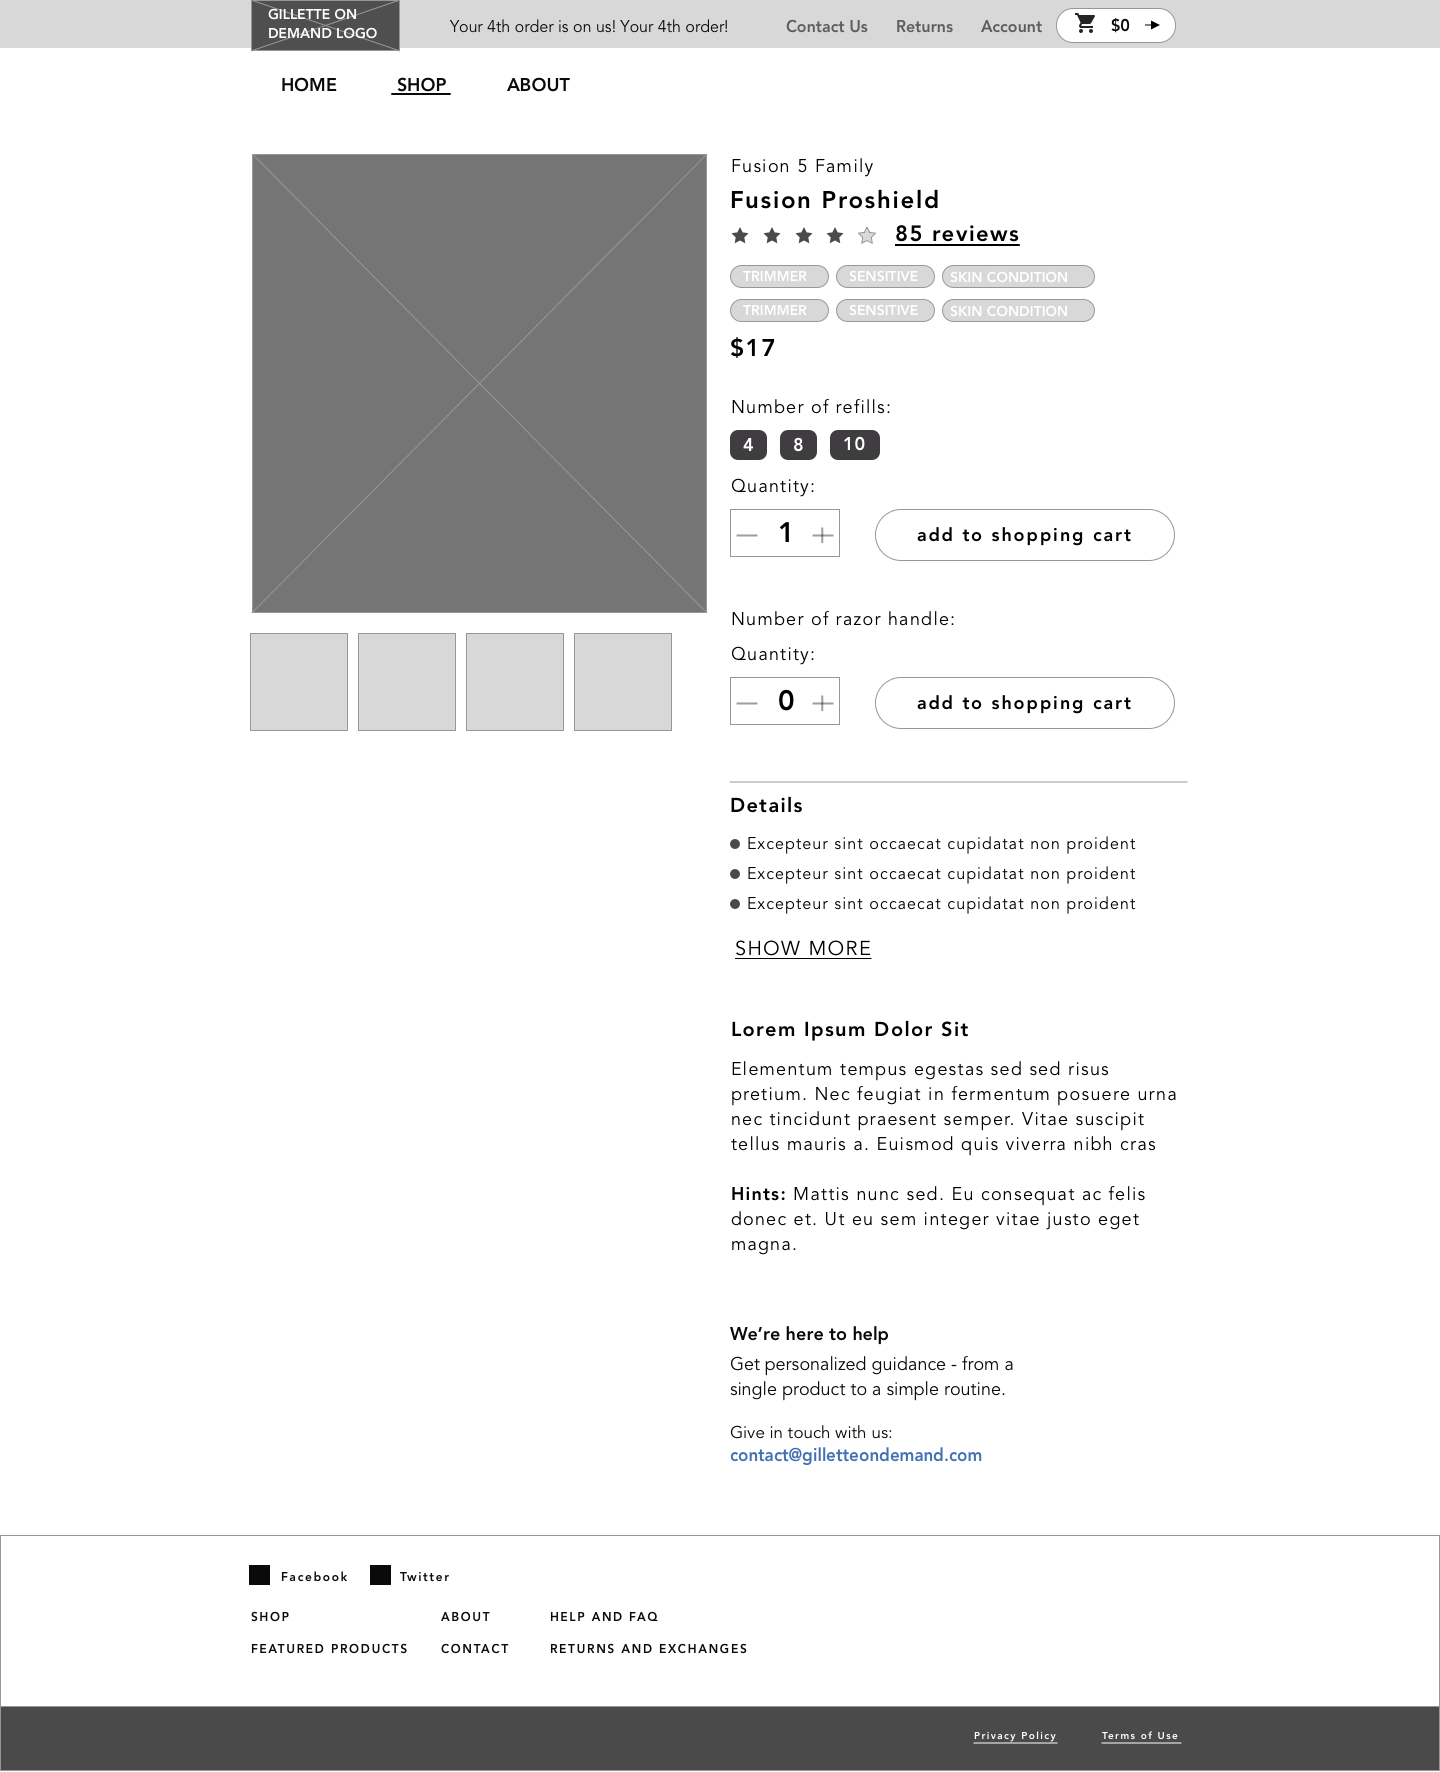 PRODUCT-DETAIL-PAGE-MVP-1